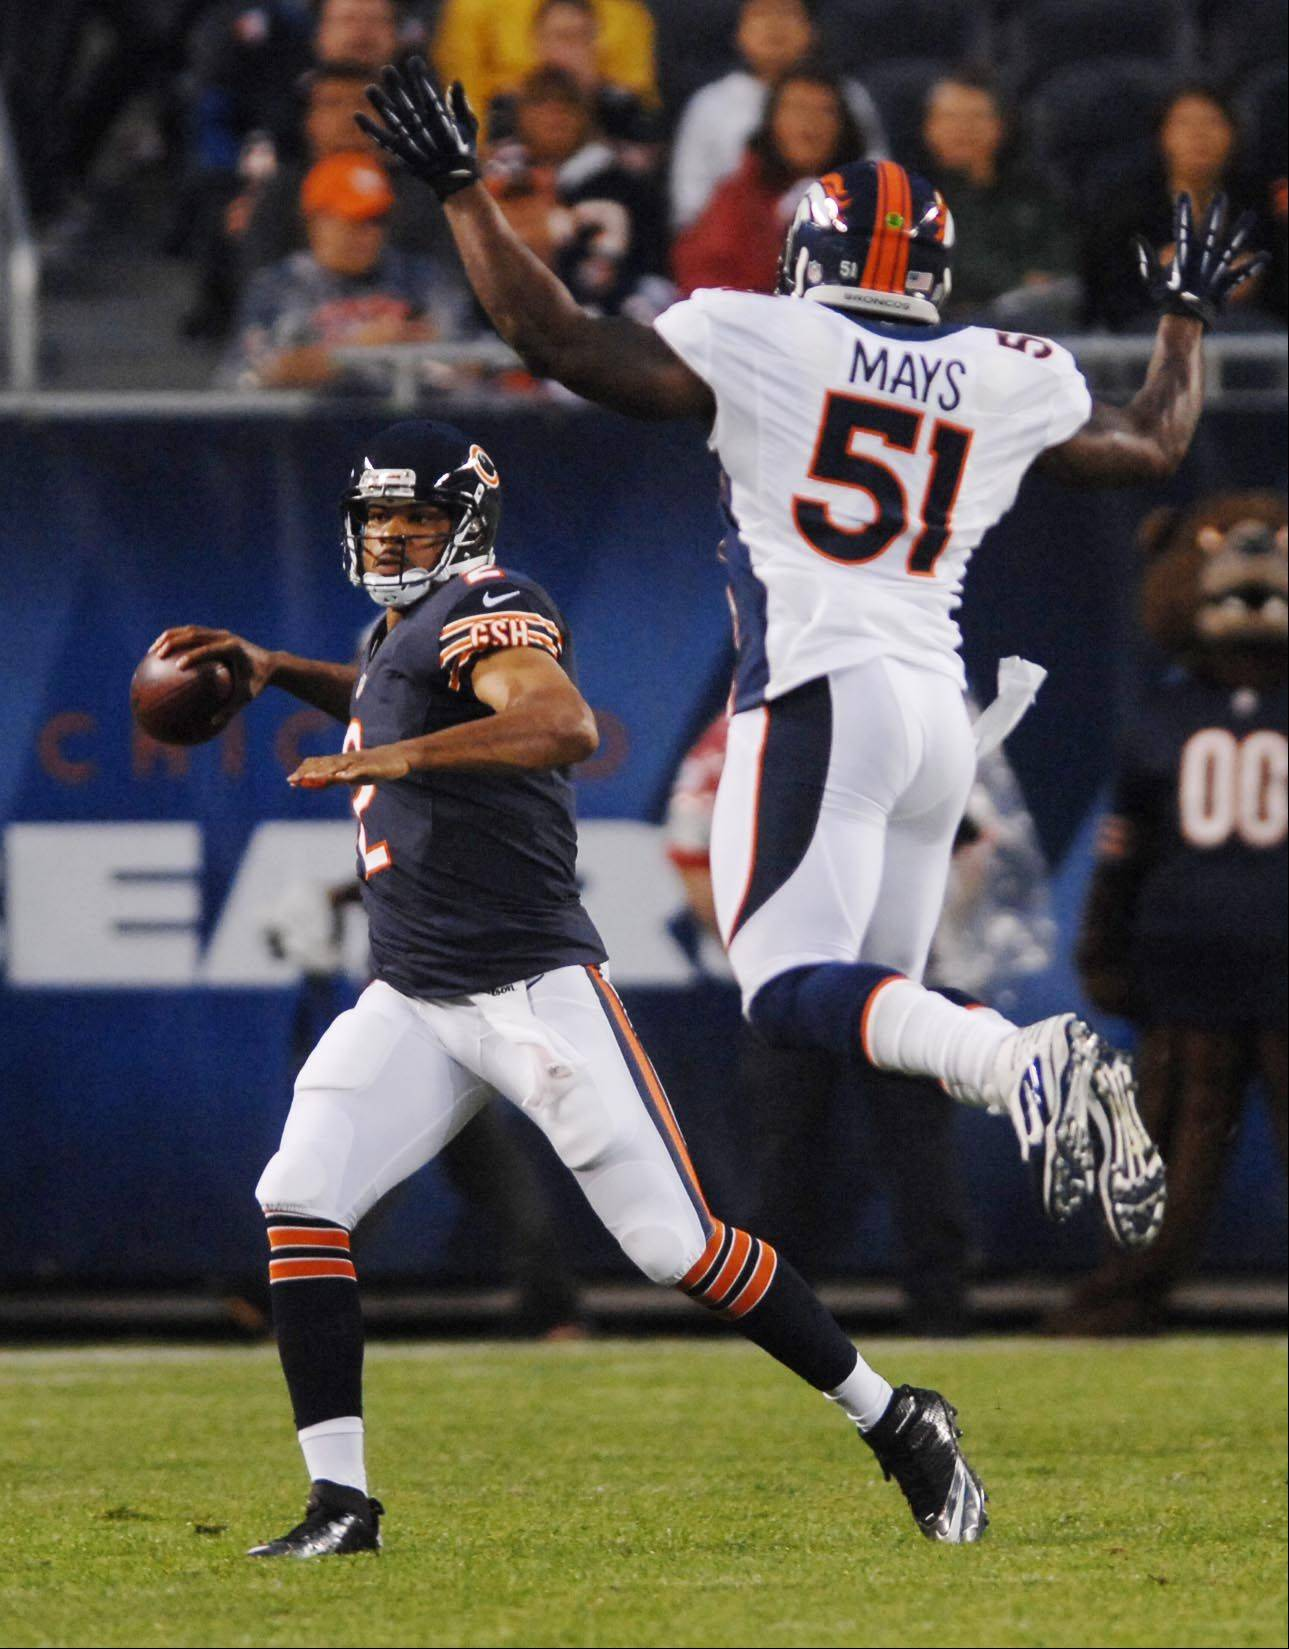 Denver Broncos linebacker Joe Mays pressures Chicago Bears quarterback Jason Campbell.